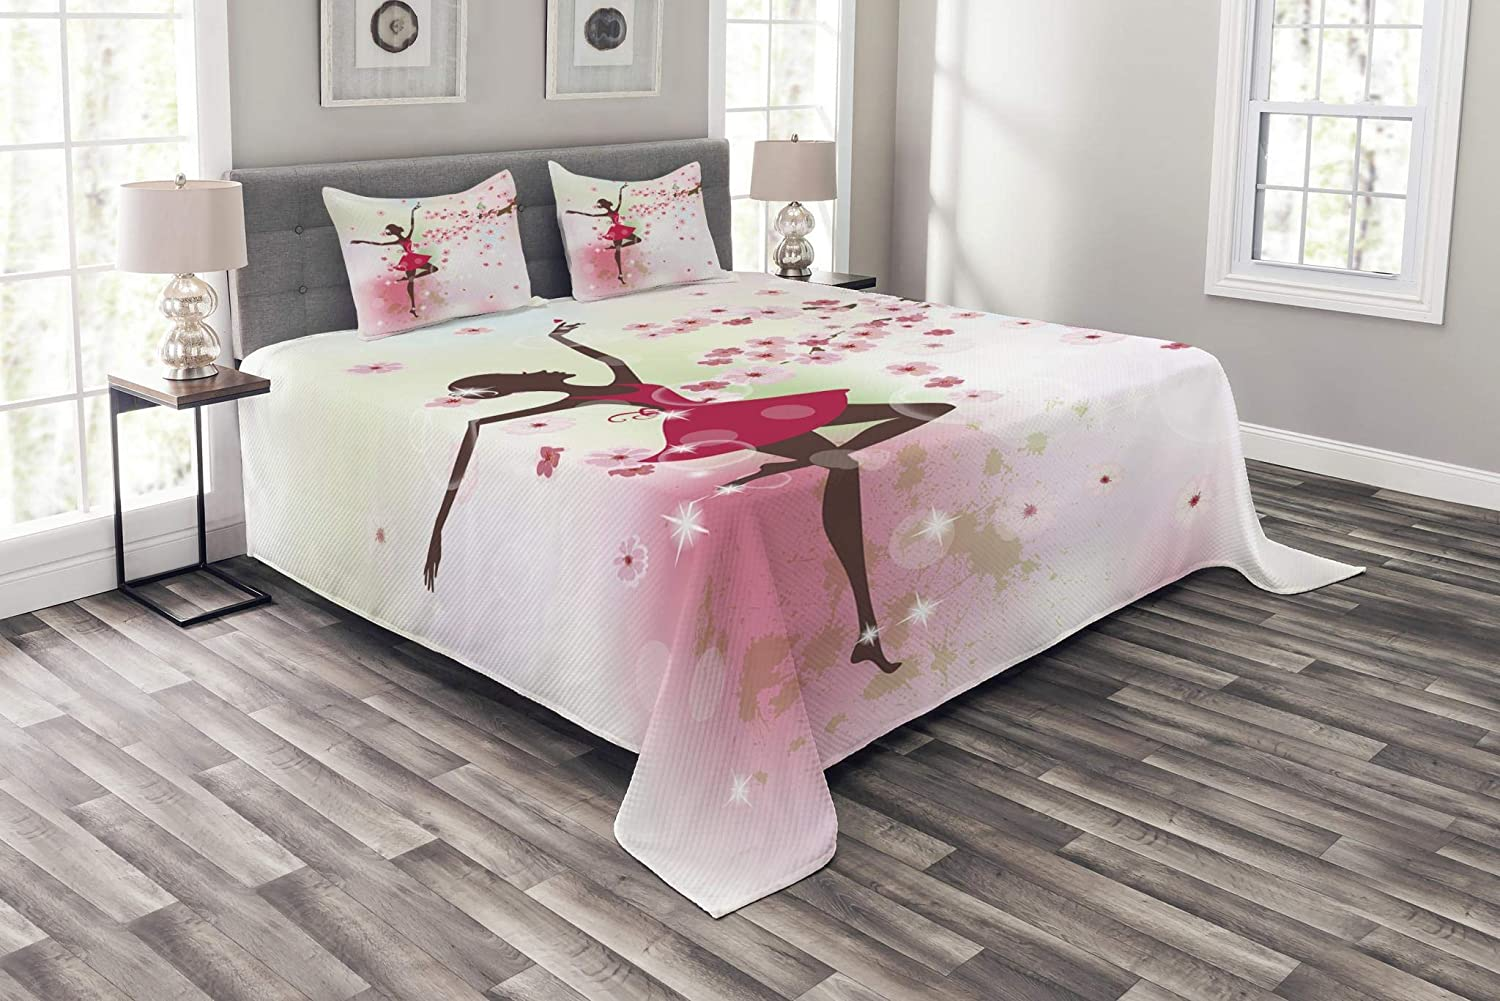 Lunarable Kids Bedspread Set Twin Size, Butterfly Fairy Ballerina Princess Dancer Floral Tree Branch Floral, Decorative Quilted 2 Piece Coverlet Set Pillow Sham, Pale Pink Magenta Dried Rose bed_13063_twin